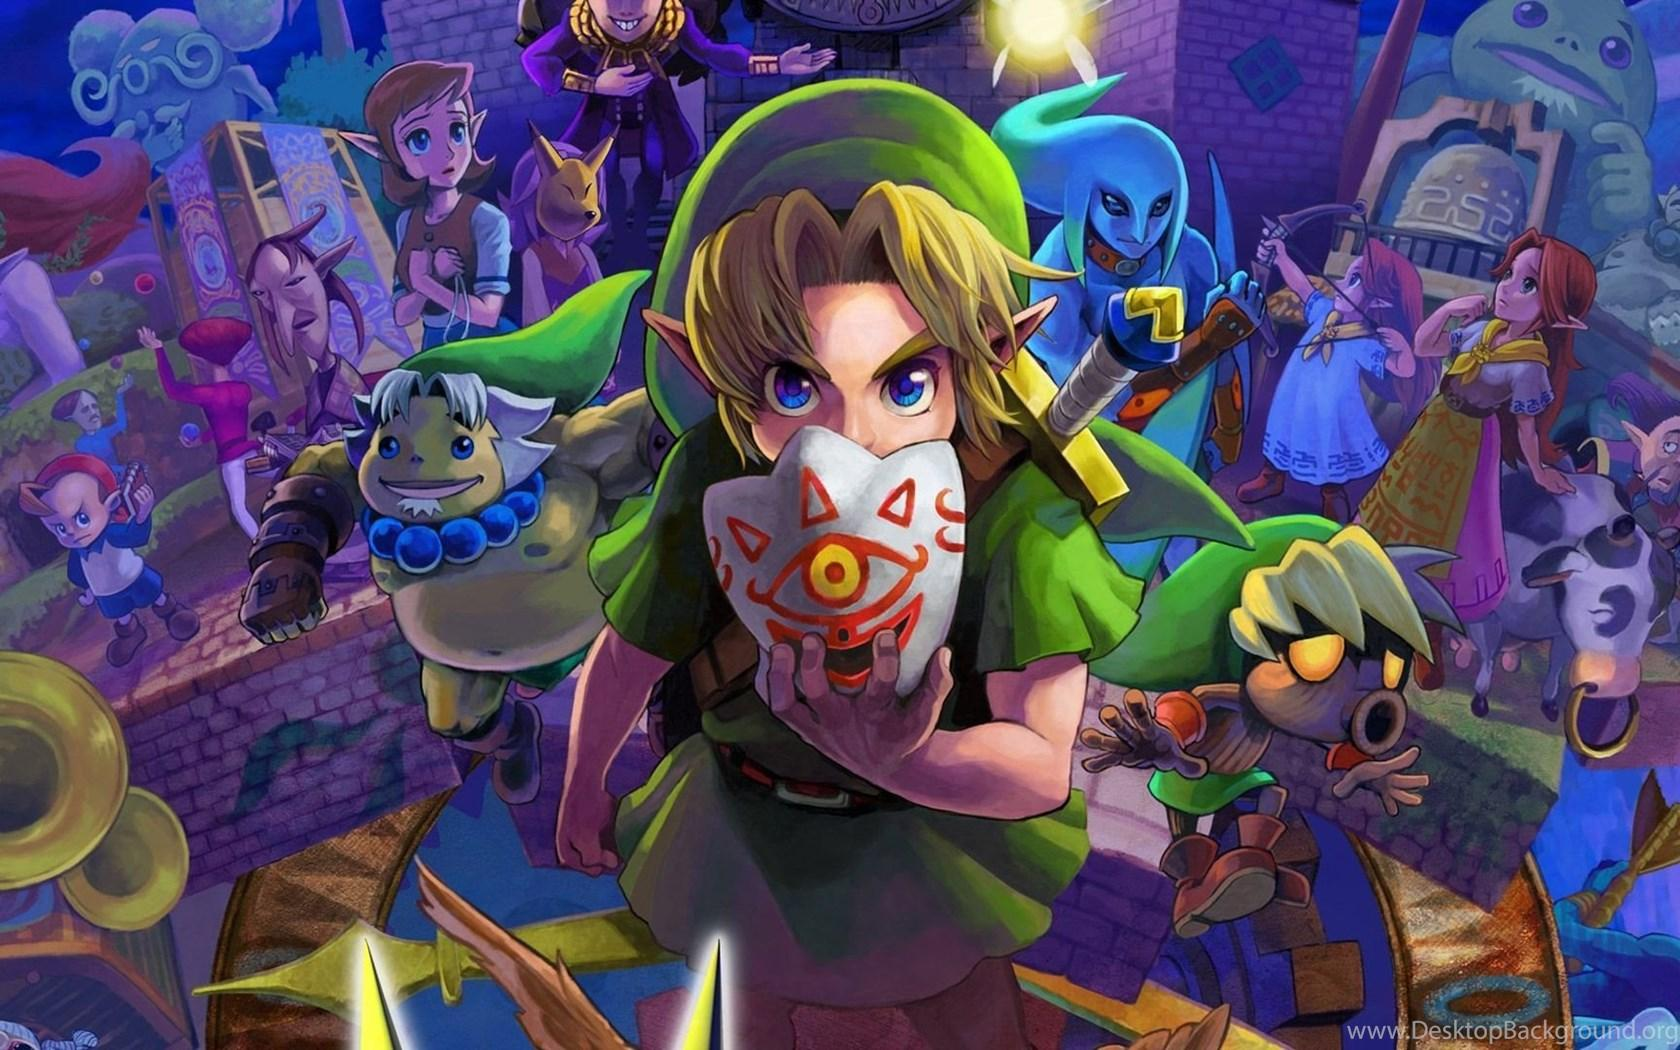 The Legend Of Zelda Majora's Mask Wallpapers 1080p Hd Desktop